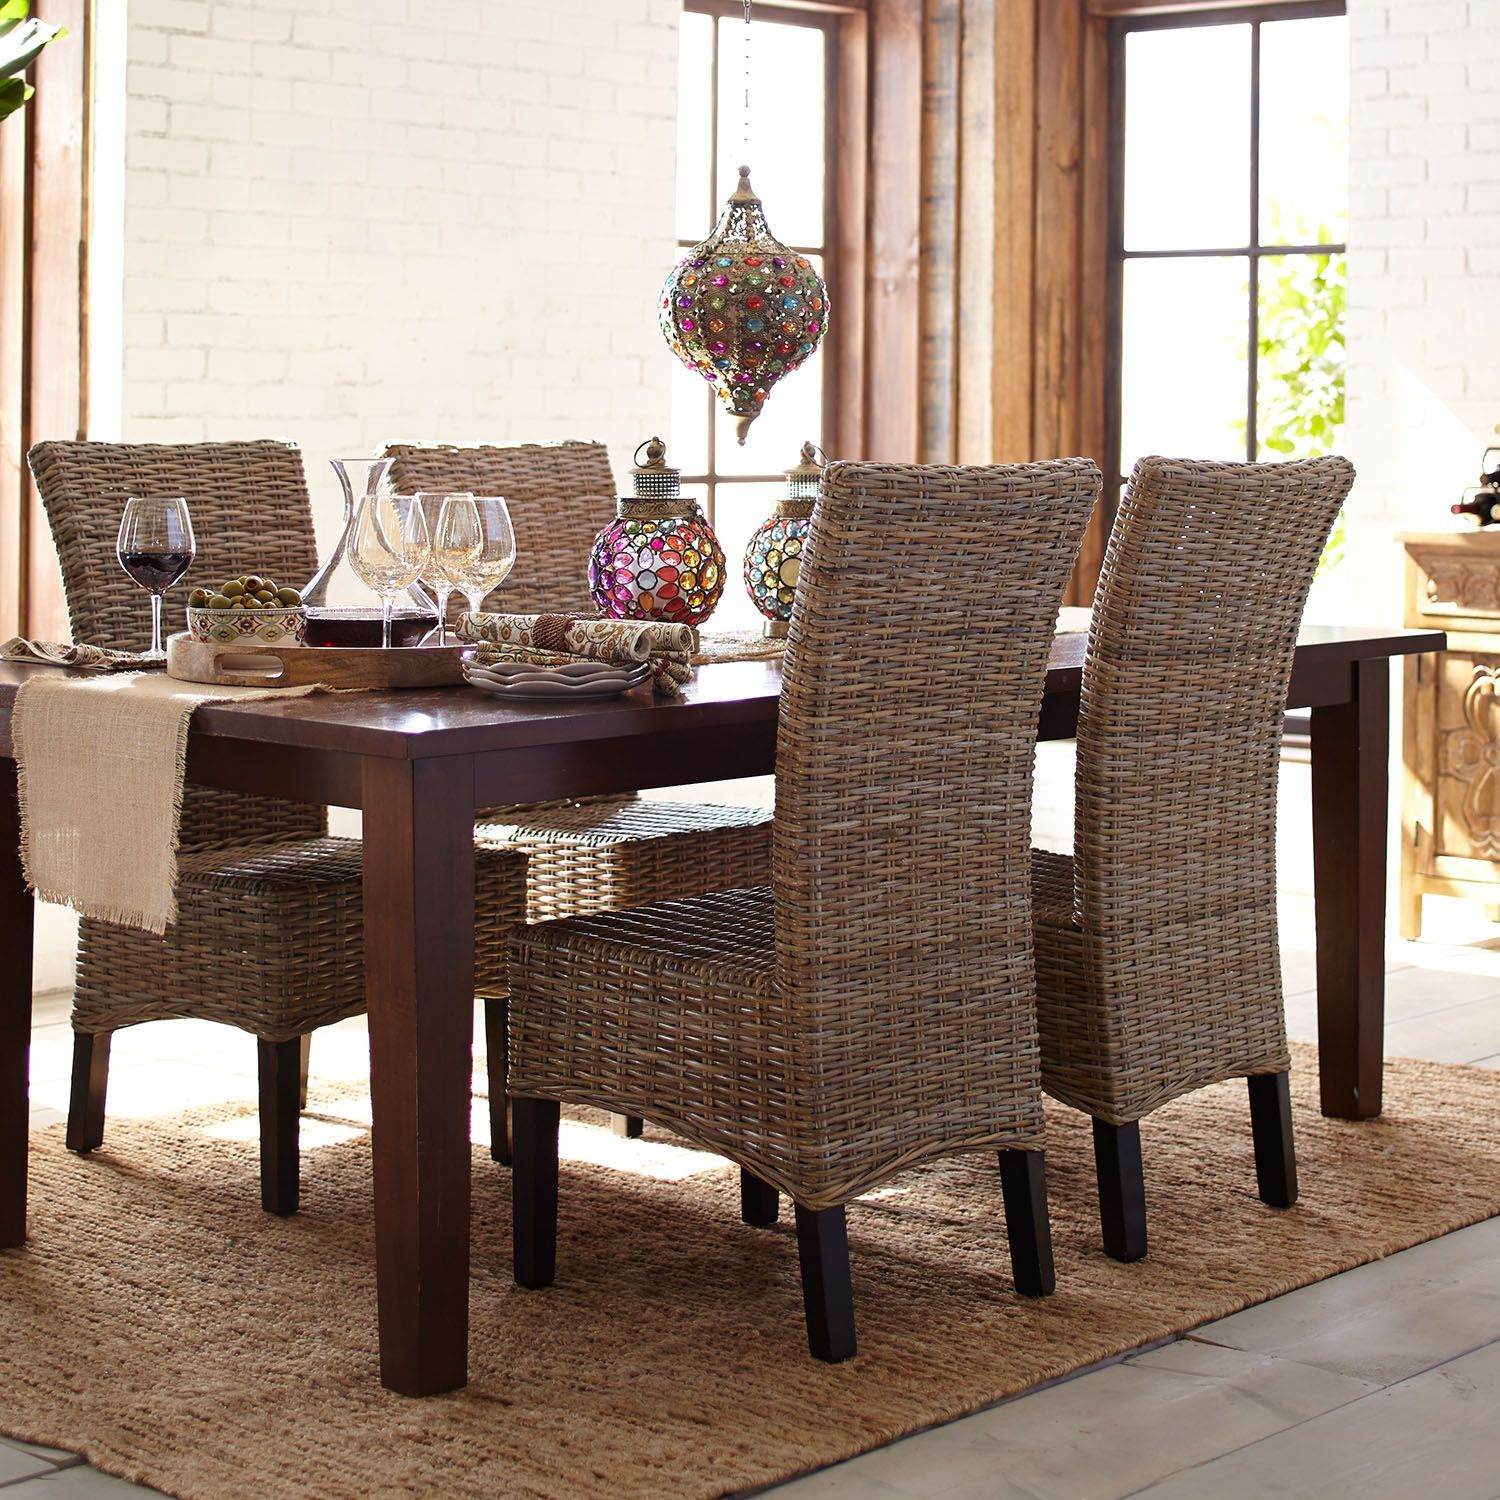 Kubu Dining Chair In 2020 Wicker Dining Room Chairs Dining